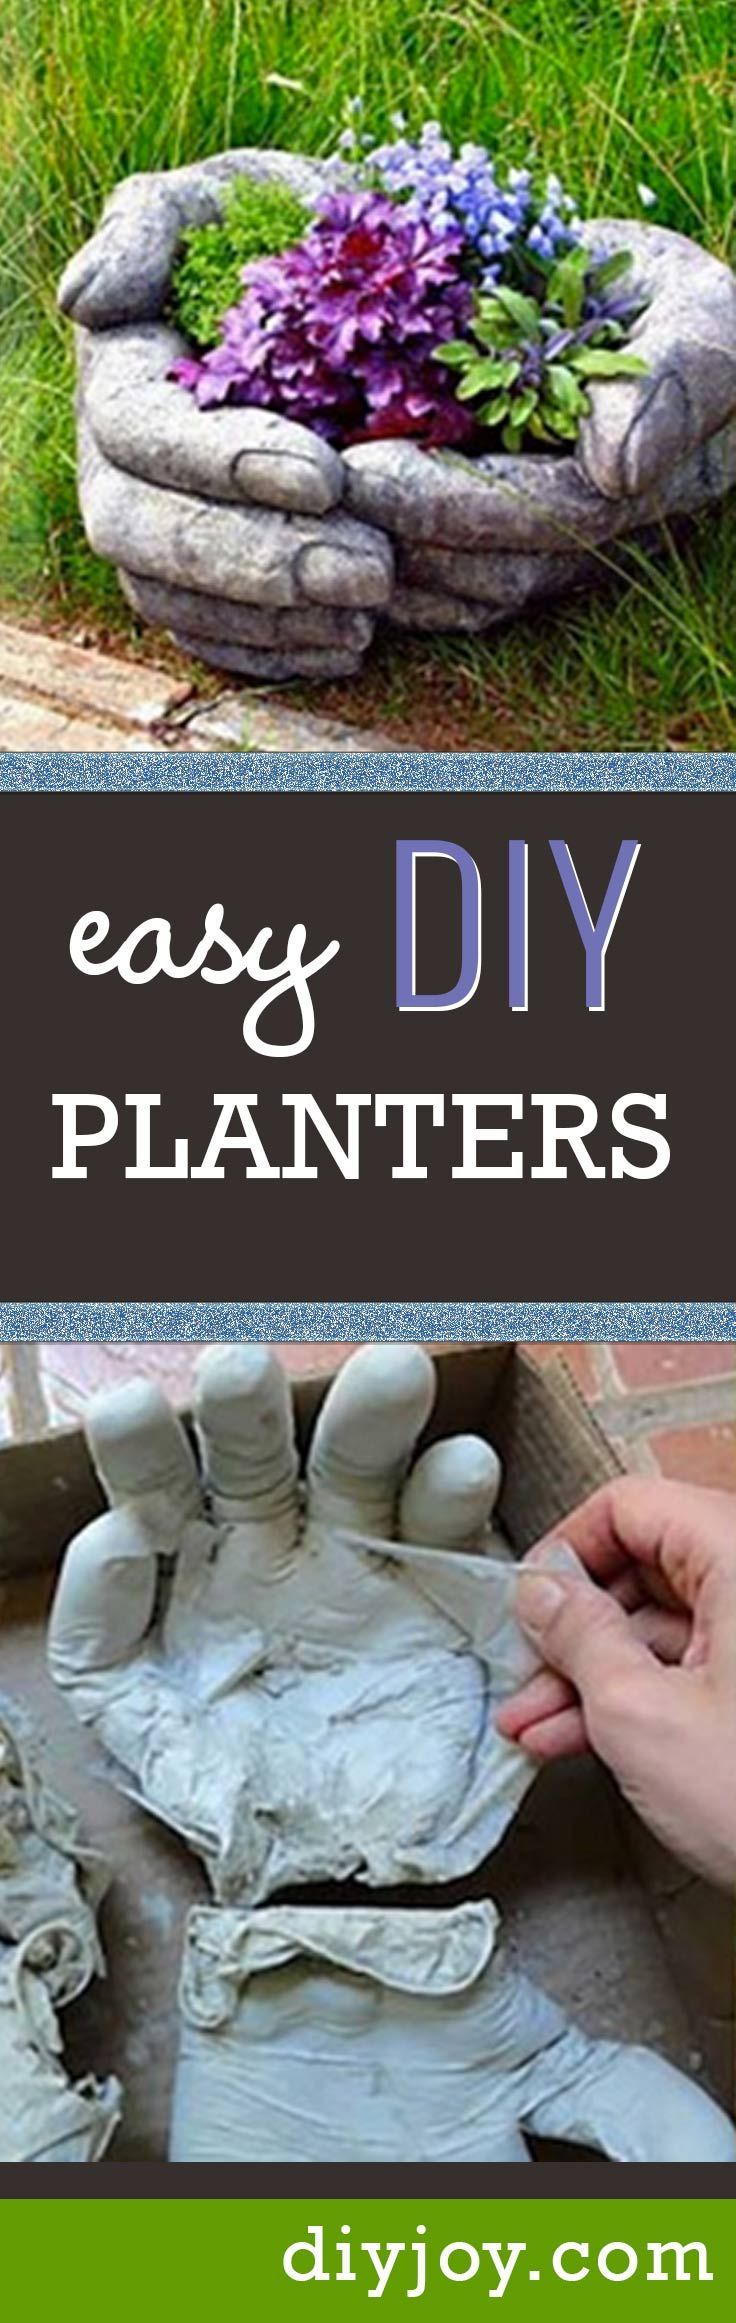 Unique diy home garden decor with a shoe planter and succulents - Easy Diy Planters For Cool Do It Yourself Gardening Idea Concrete Pots In Hand Shade